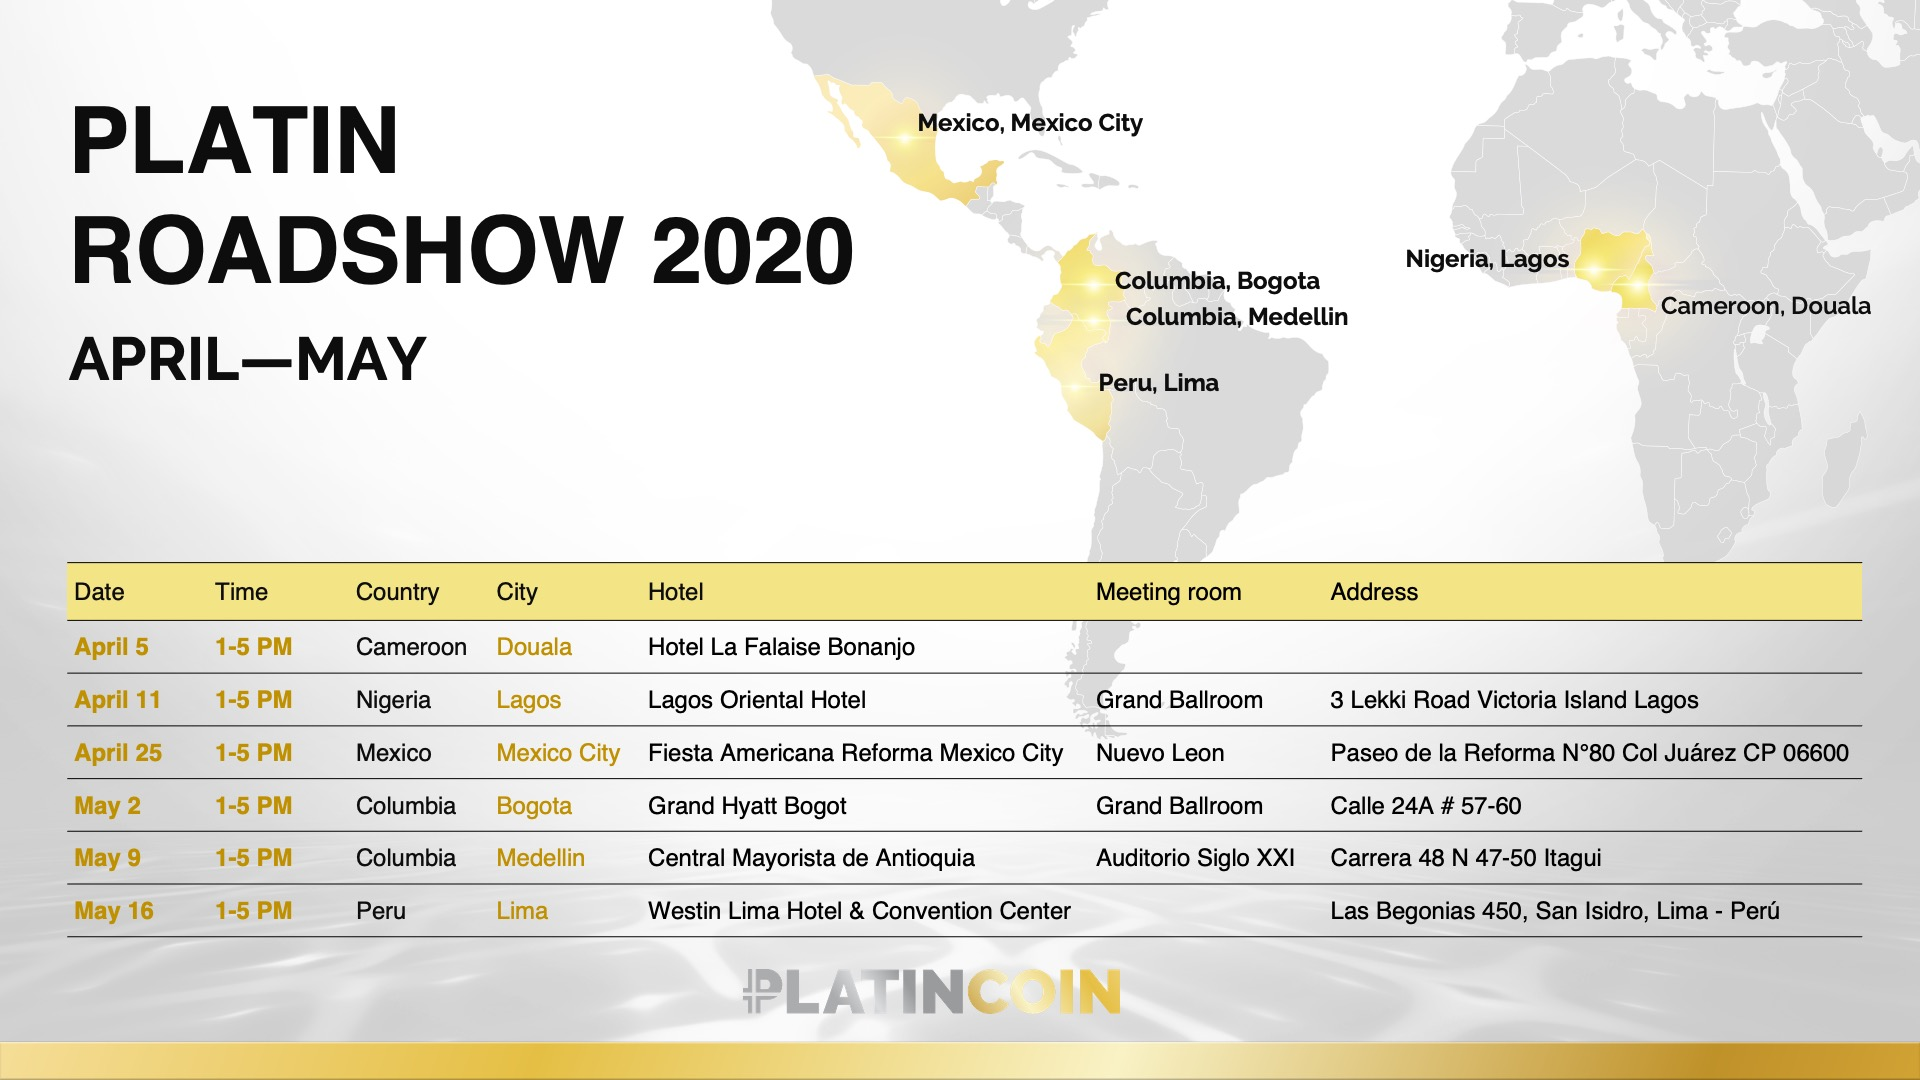 PLATINCOIN in Latin America and Africa: continuing our global expansion